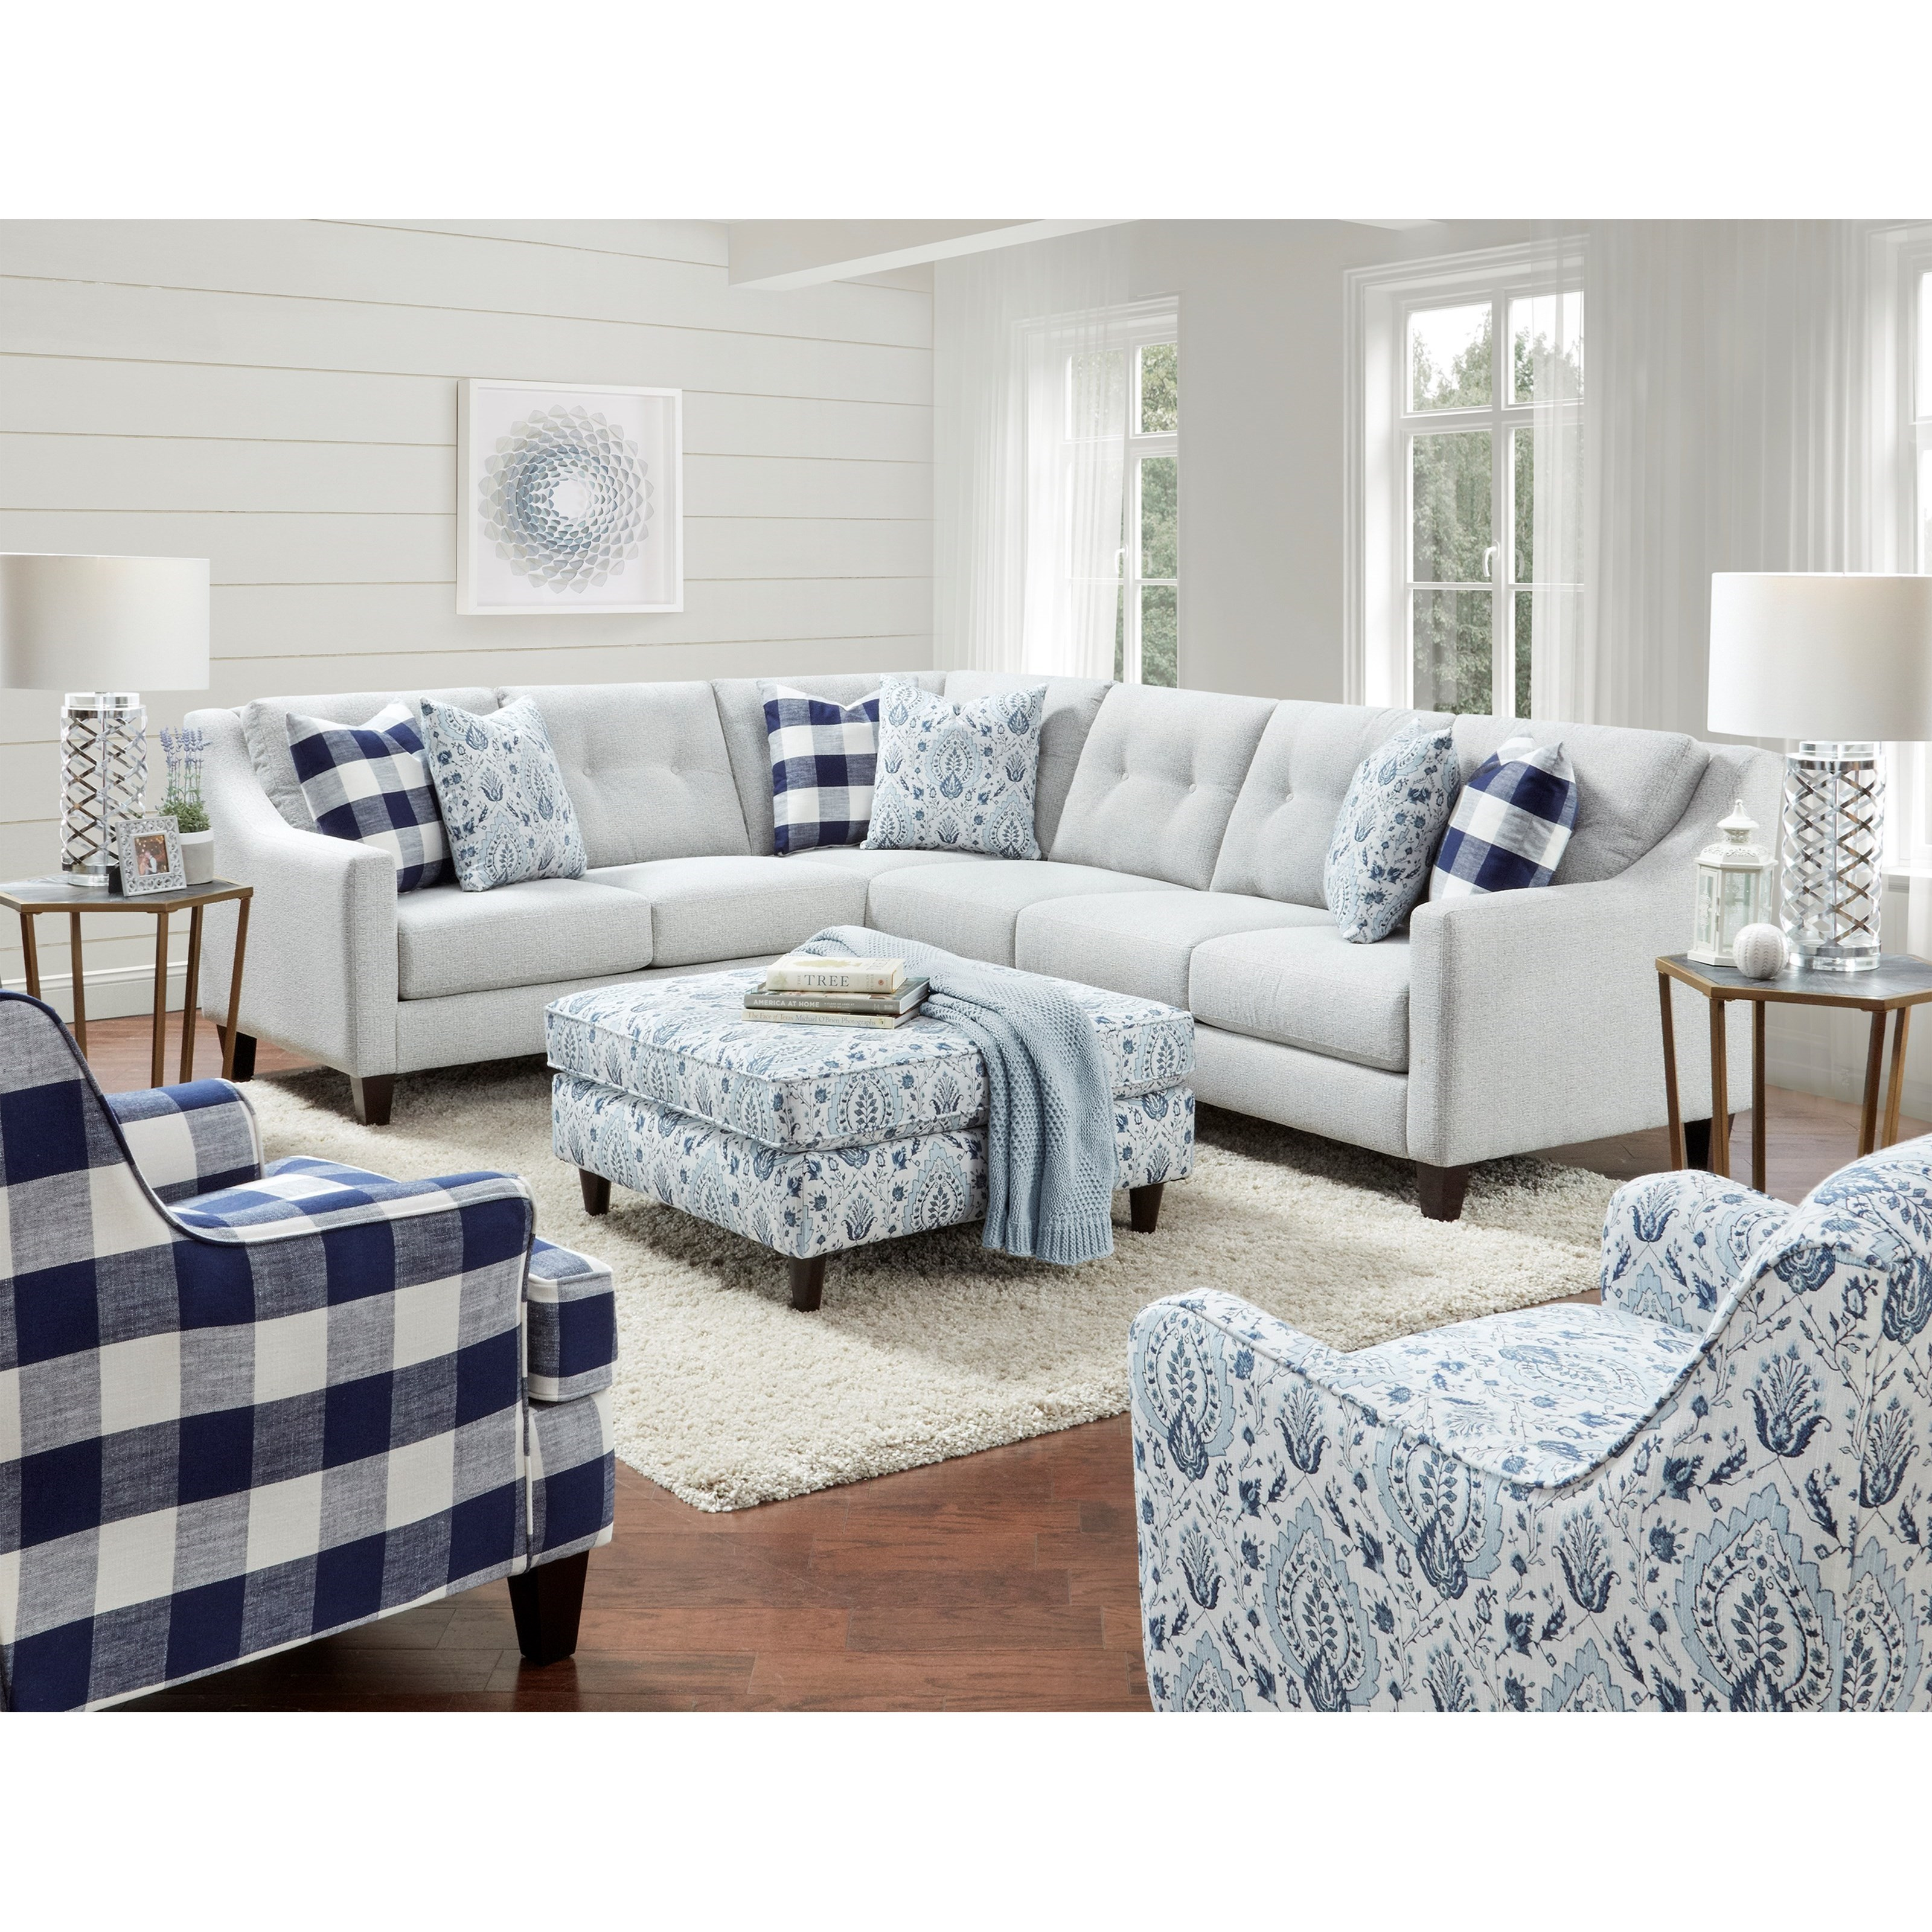 3280 Living Room Group by Fusion Furniture at Hudson's Furniture